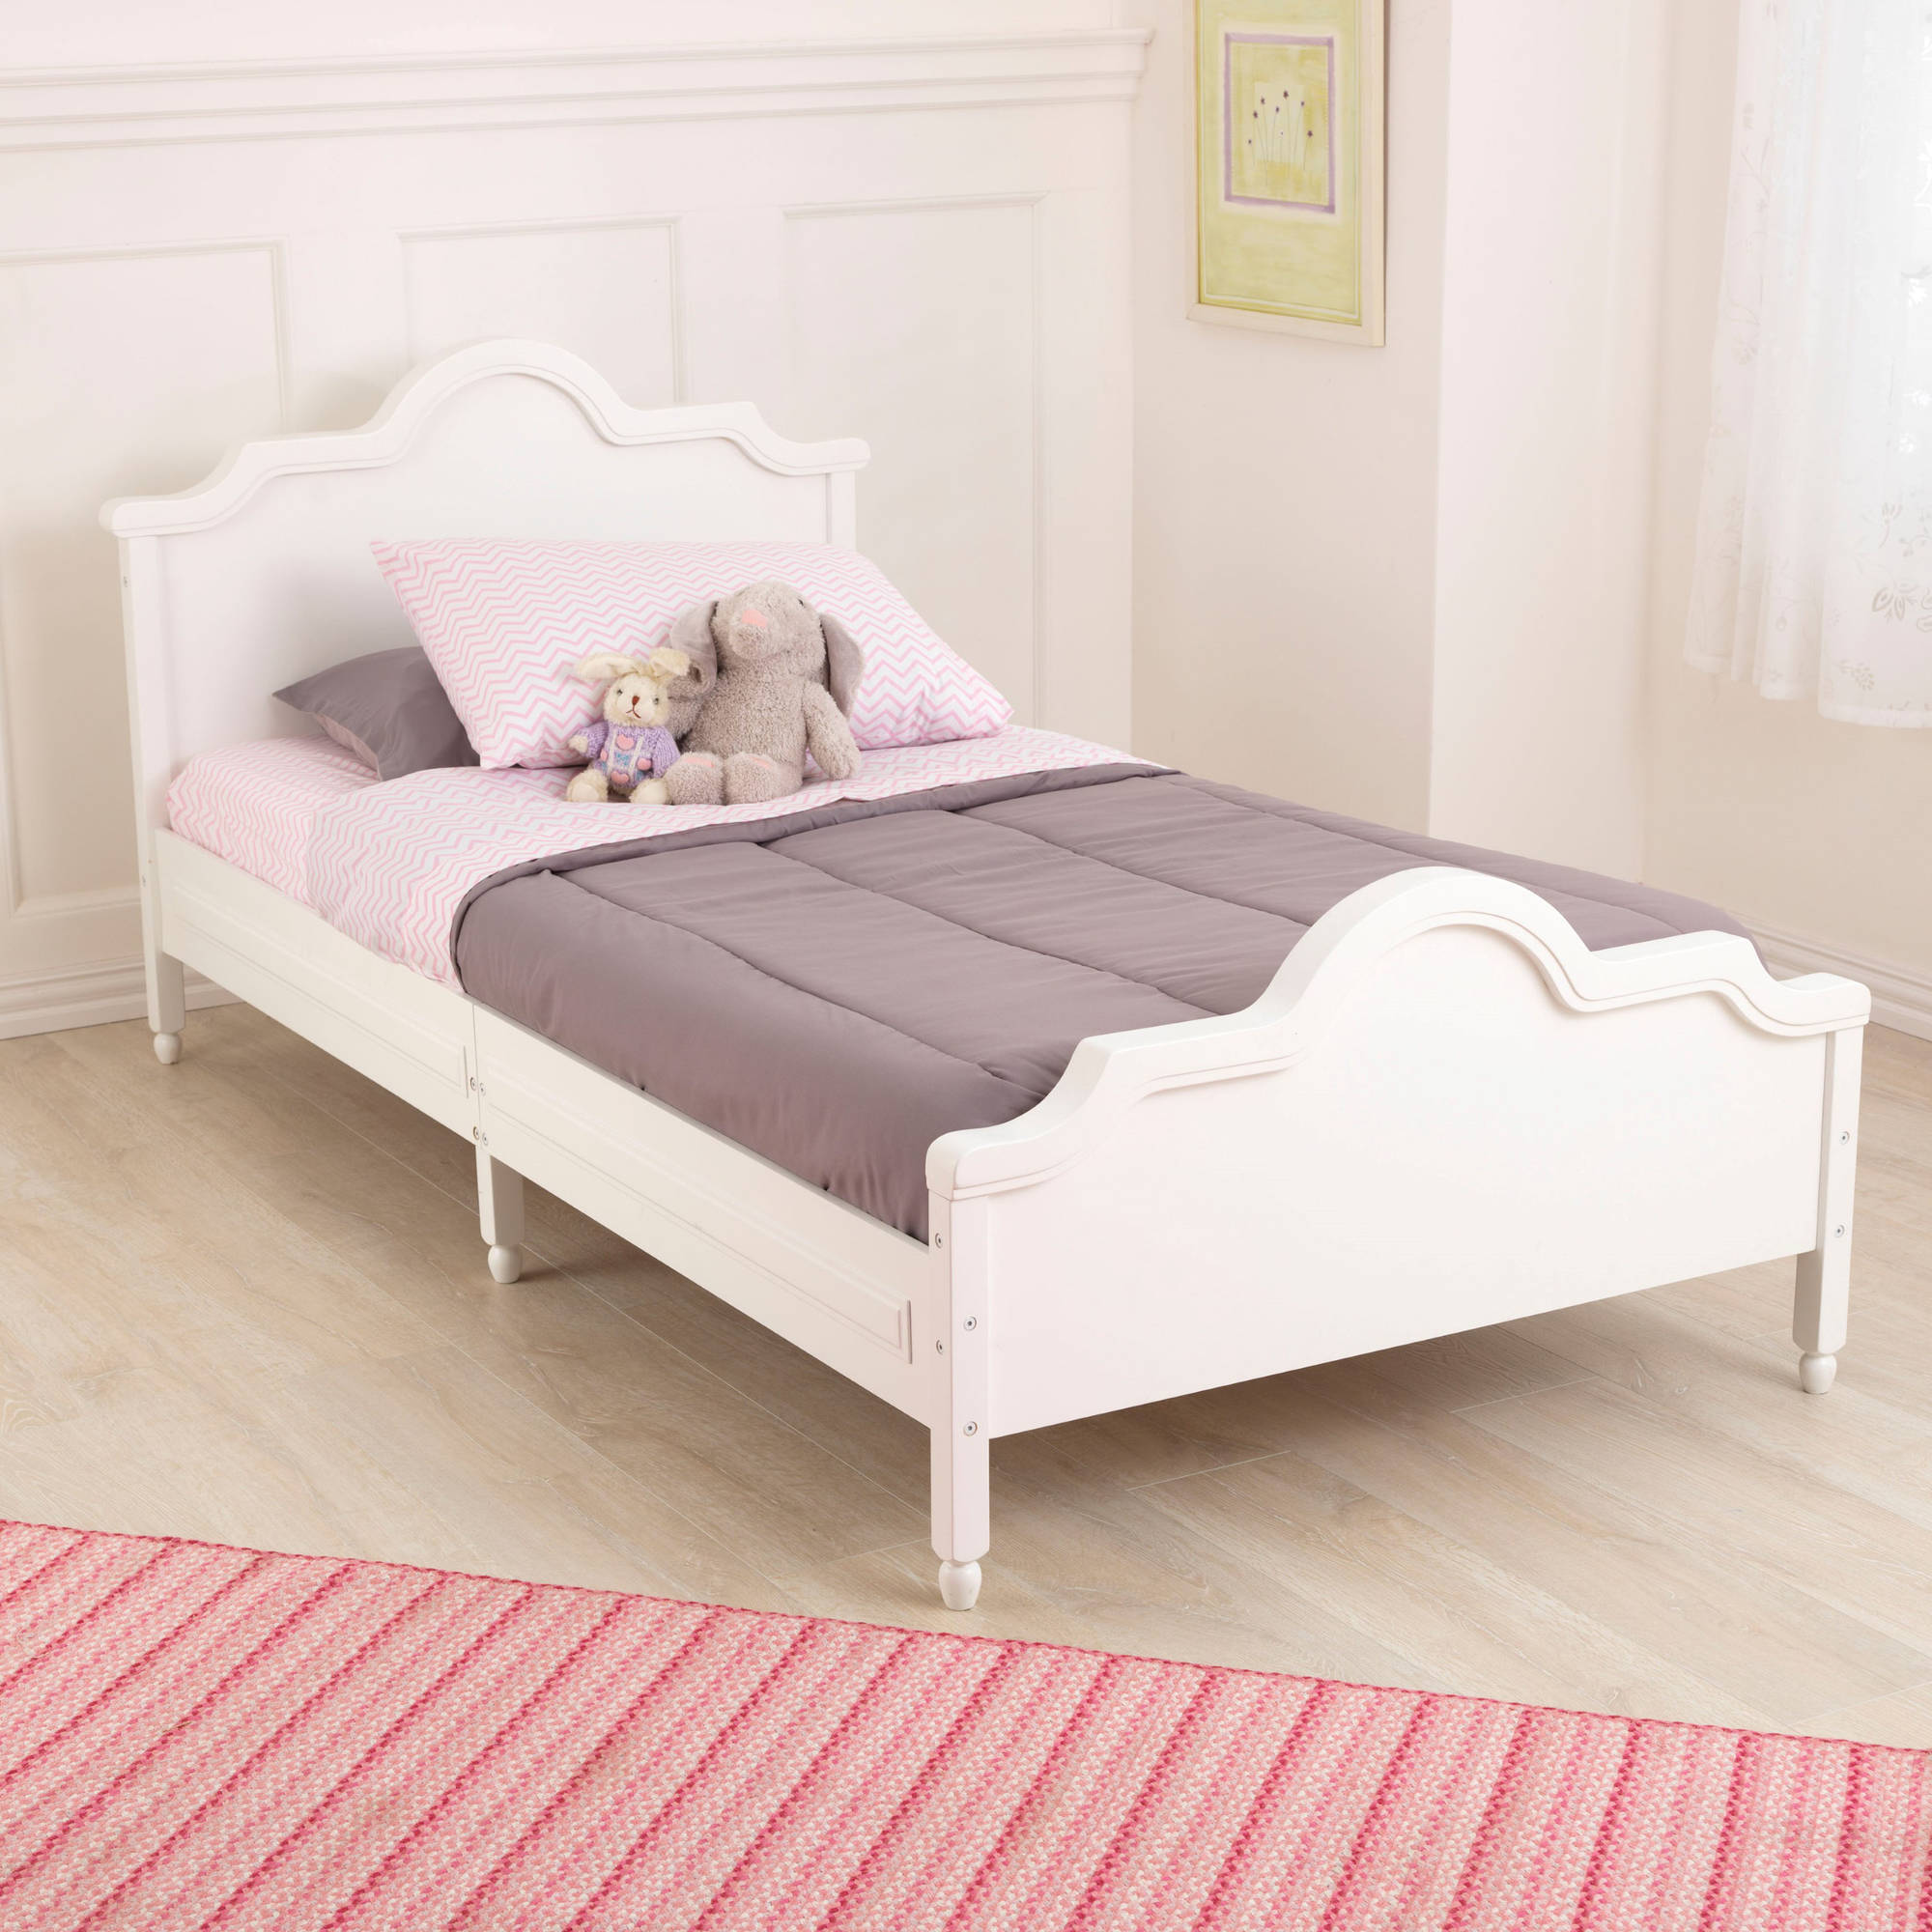 KidKraft Raleigh Twin Bed, White